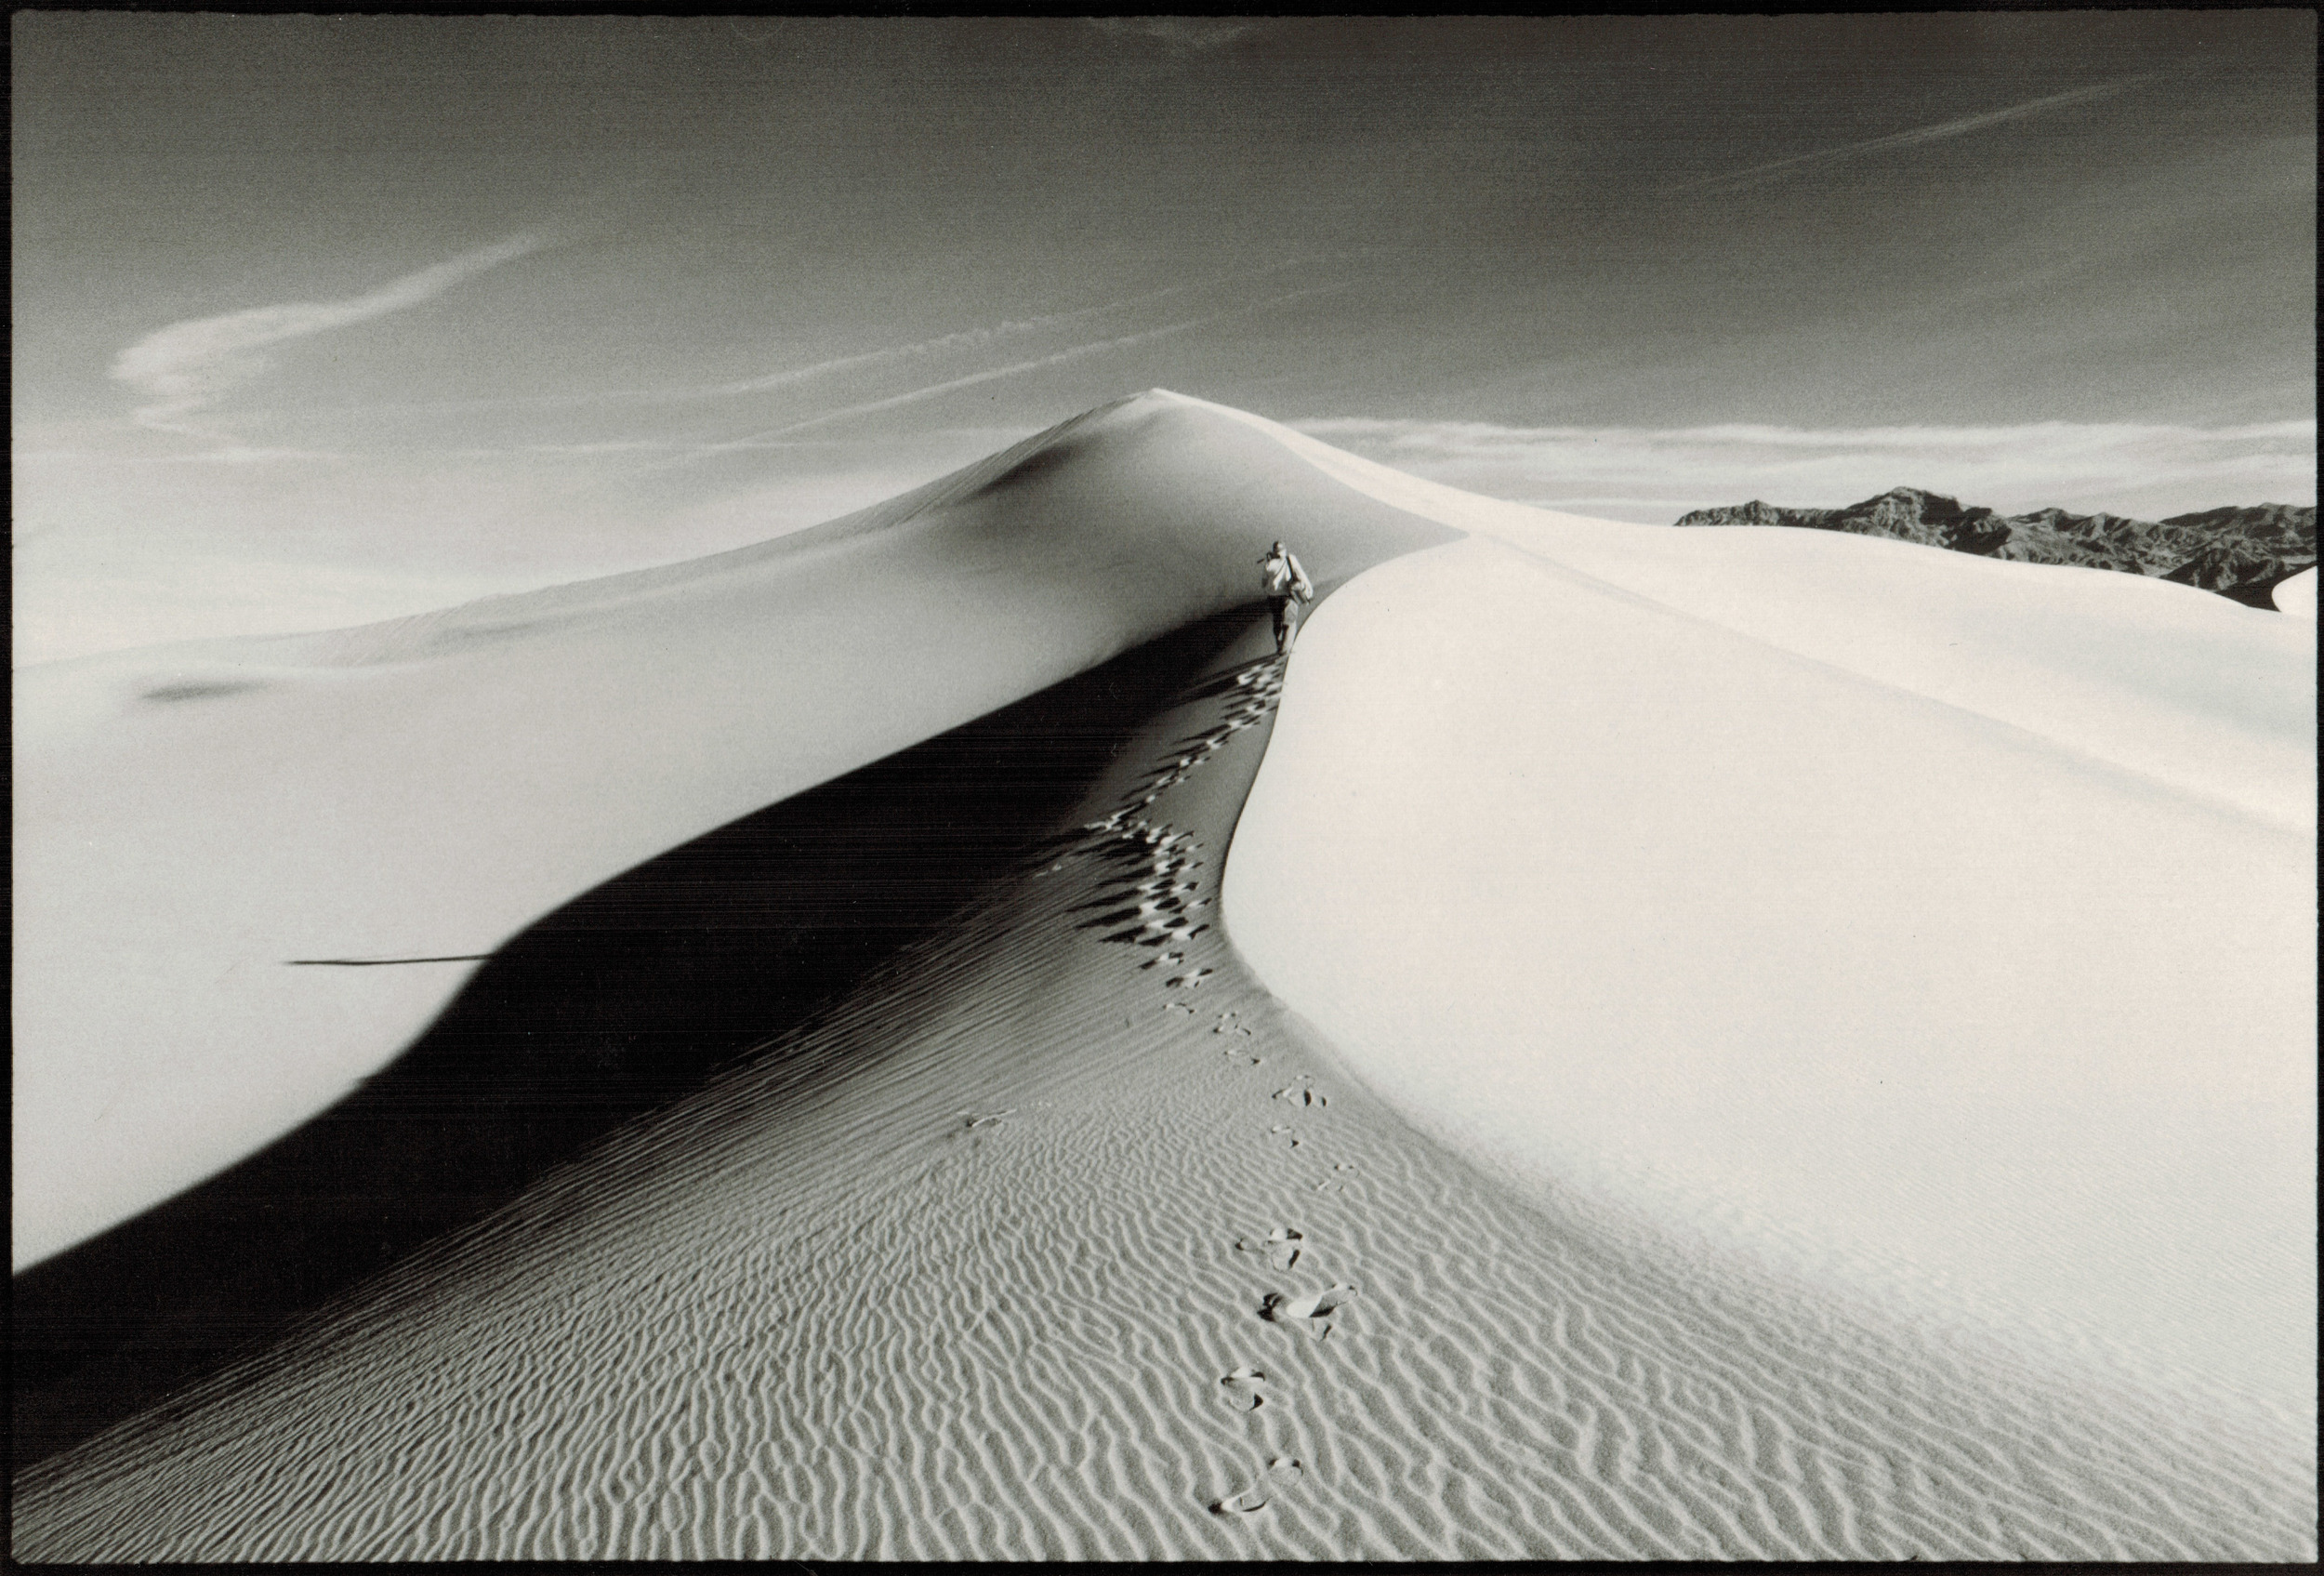 """Michael Robertson   """"Man on the Dune,"""" Framed 8 """"x 10"""" matted in 5"""" x 7"""", B & W hand-printed photograph, Estimated value $150    www.globaleyephotography.com"""